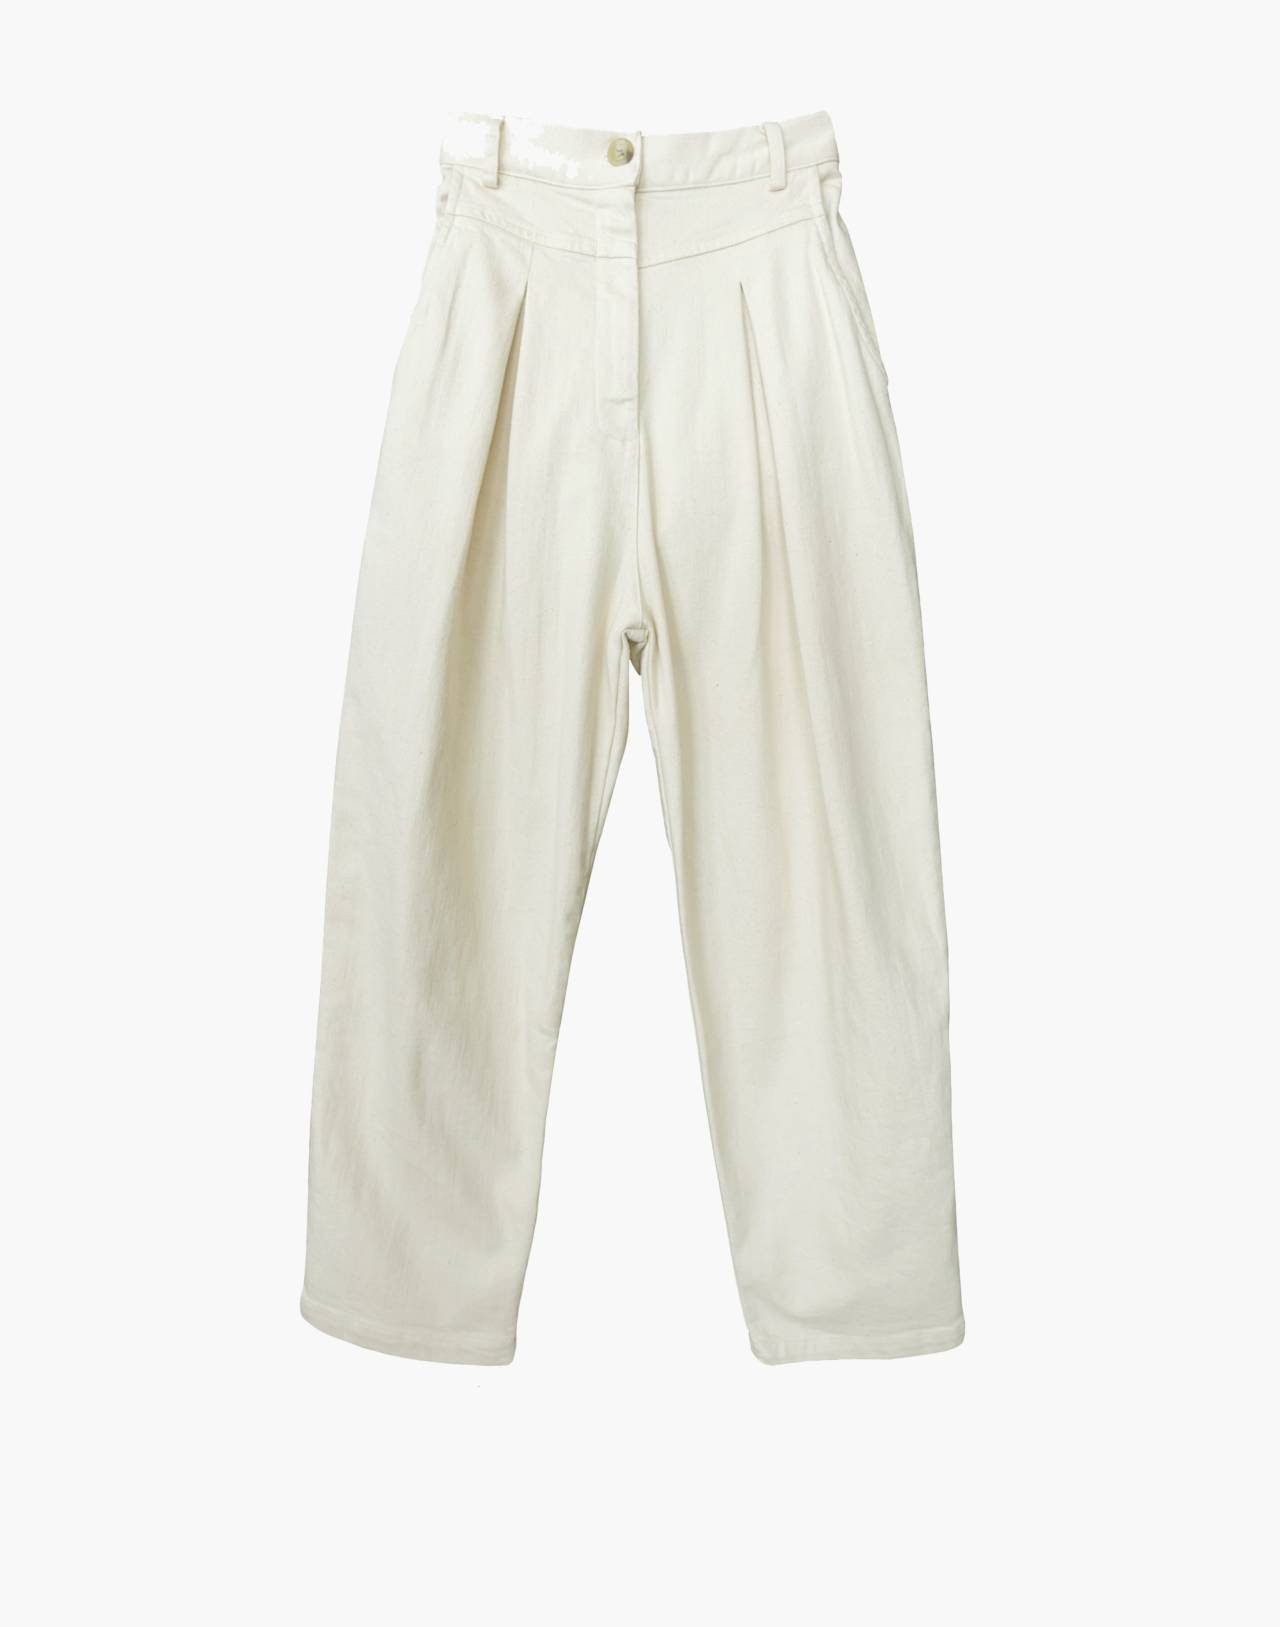 NICO NICO™ Jet Pleated Jeans in ivory white image 1